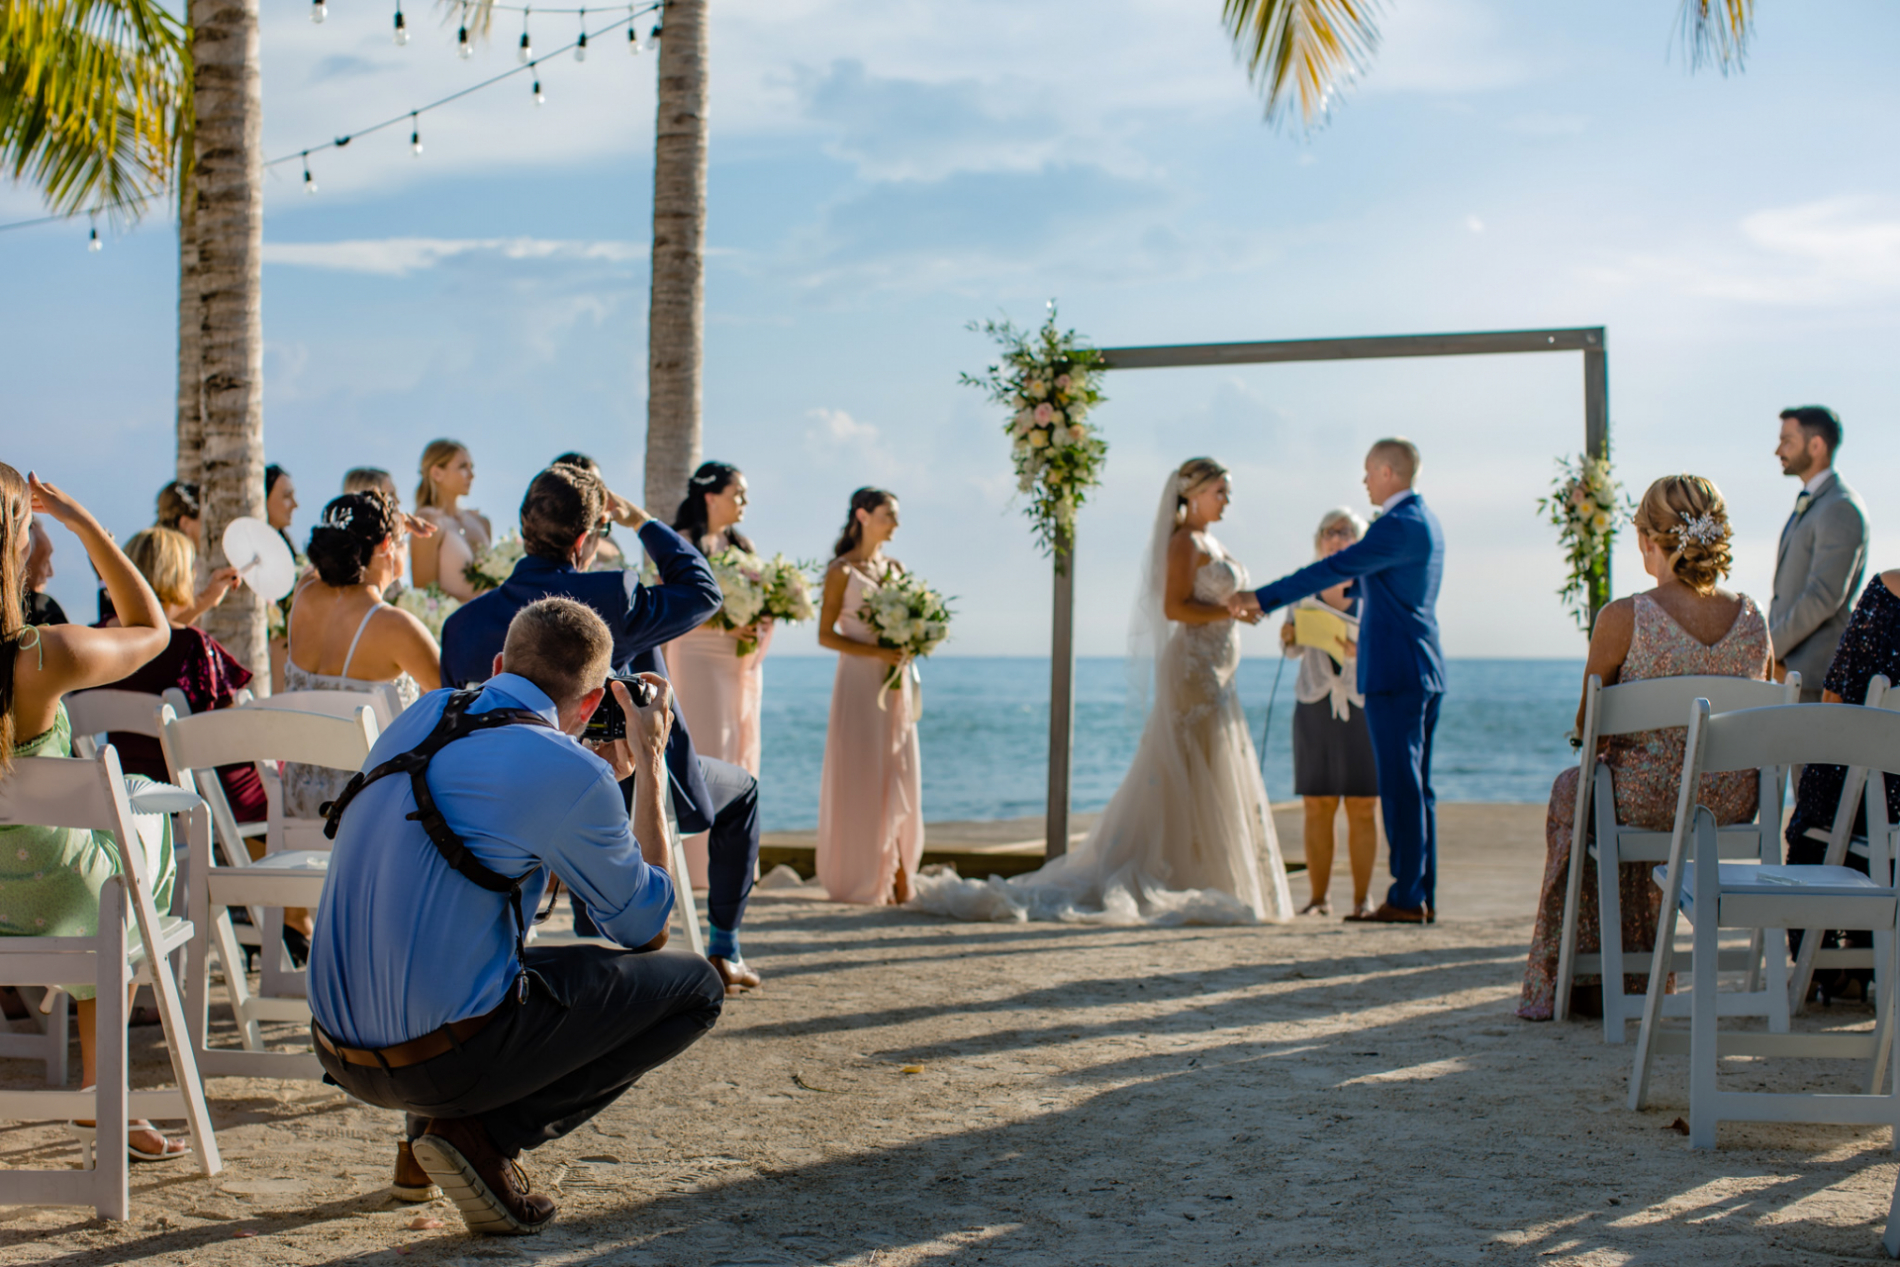 Asheville wedding photographer Michael Freas at work at a North Carolina beach ceremony